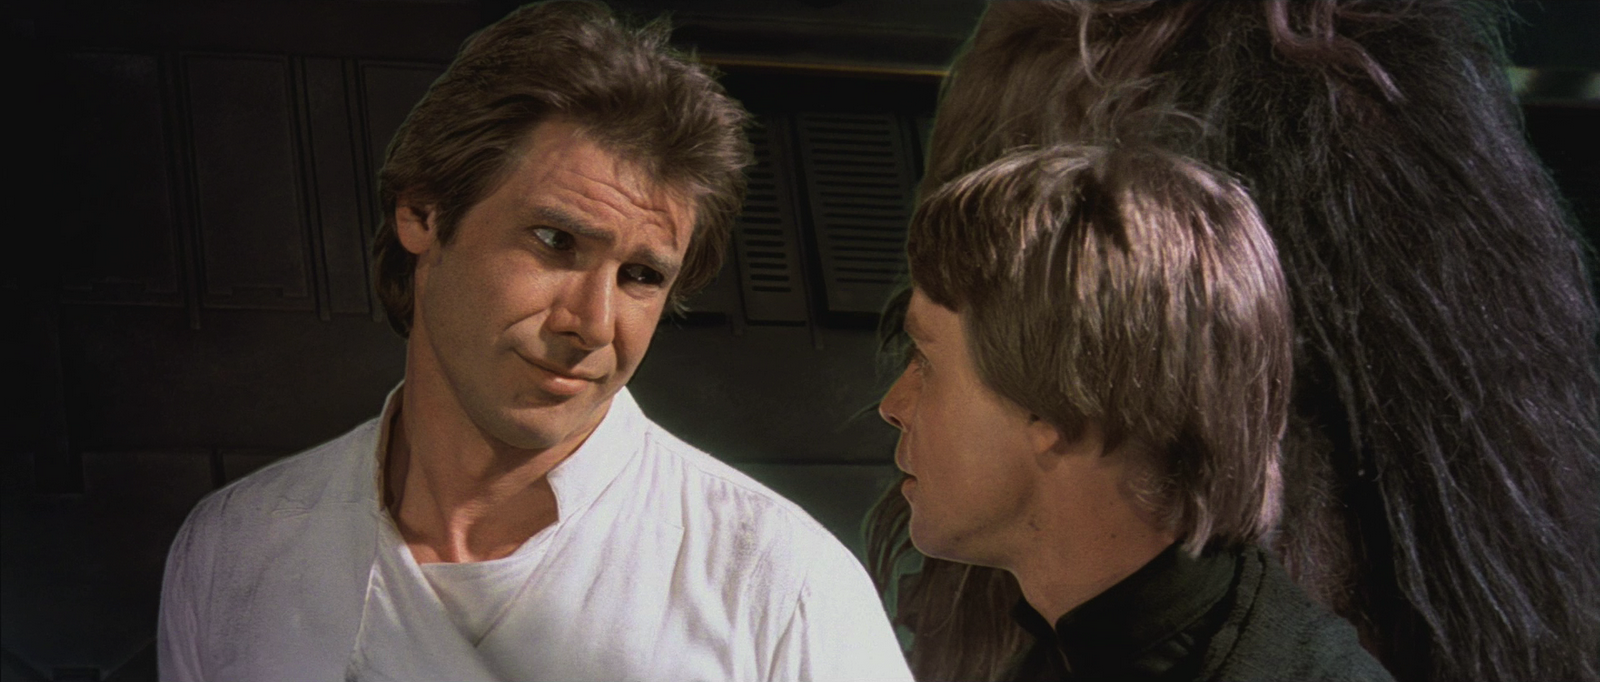 star wars luke skywalker han solo harrison ford wallpaper 1600x682